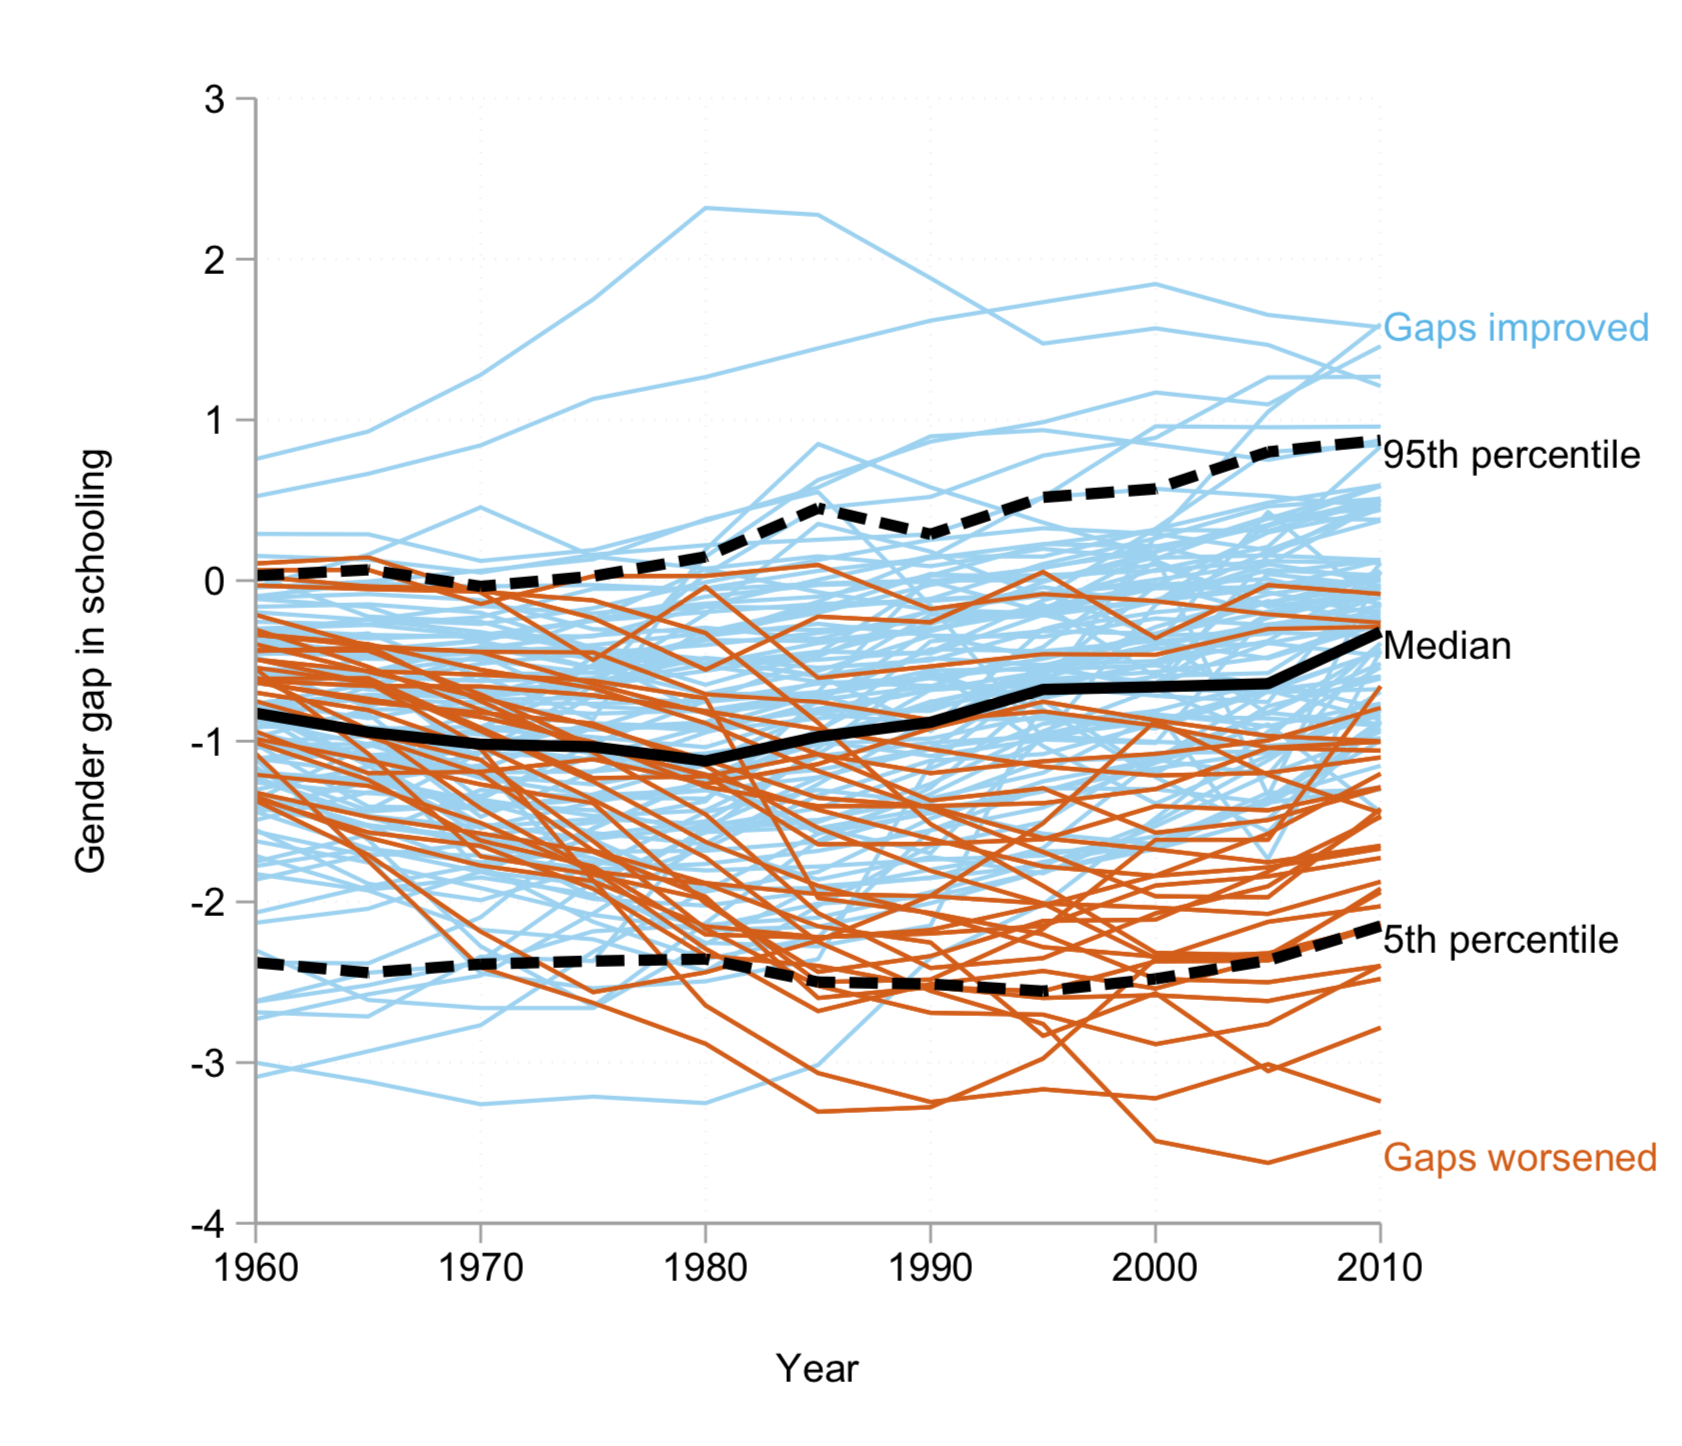 Chart showing that while gender gaps have tended to narrow, they still exist. Most countries show improvement toward but not reaching a zero gap, but a substantial minority have gotten worse over time.